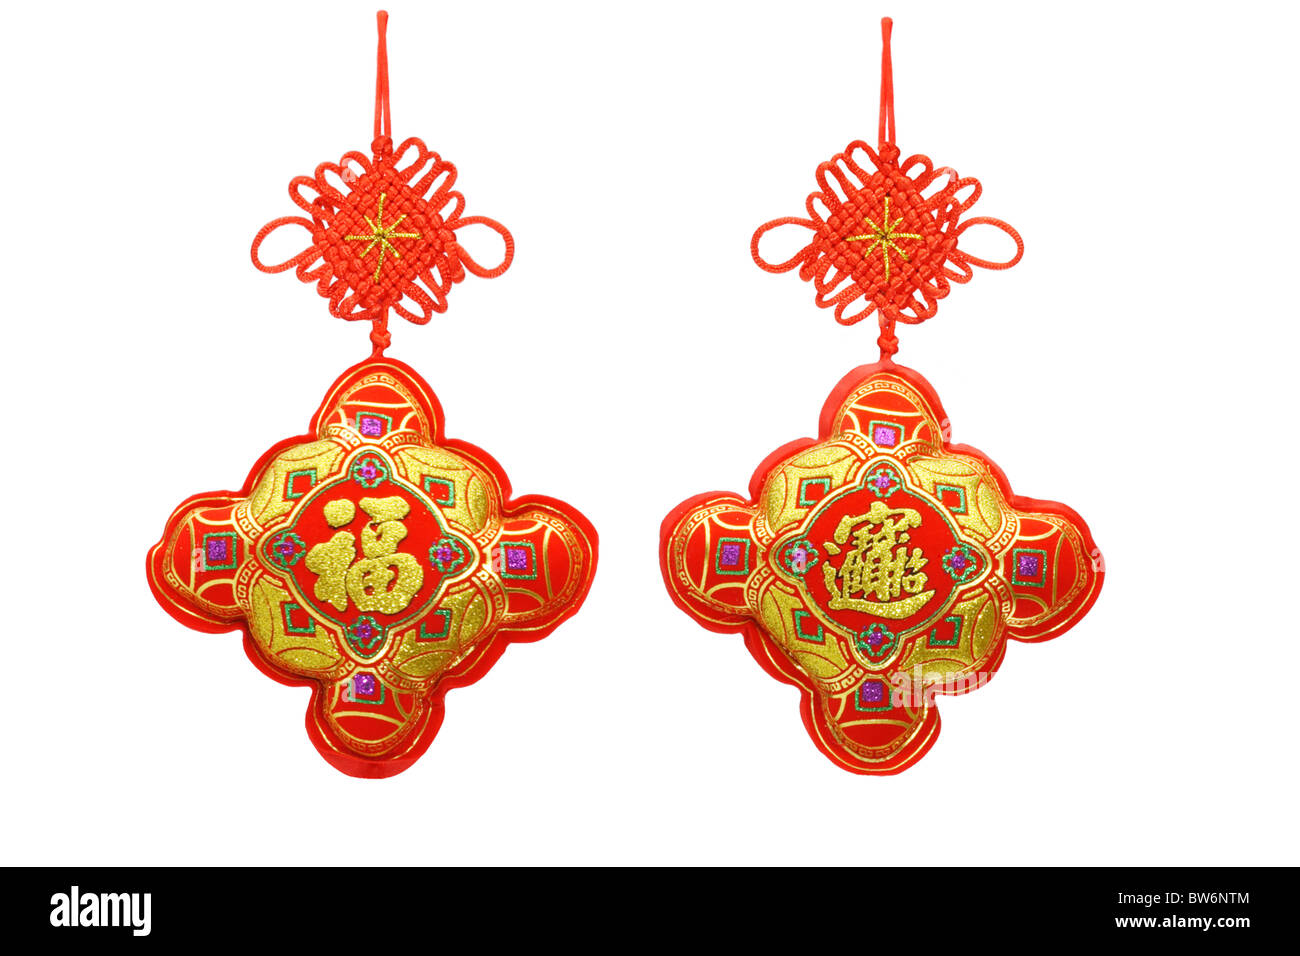 Chinese new year ornaments on white background - Stock Image